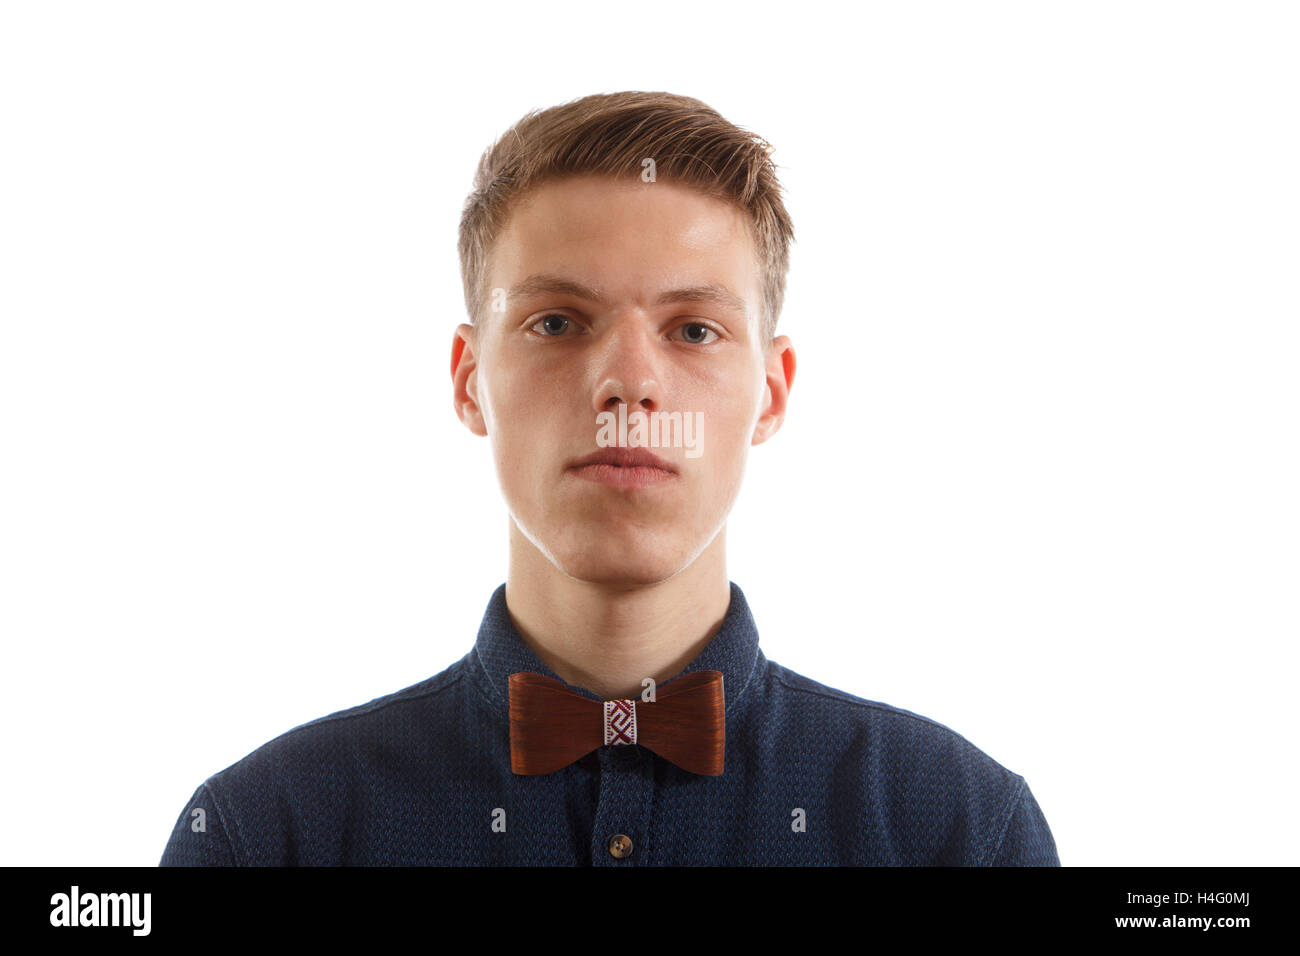 Man with a wooden bowtie - Stock Image